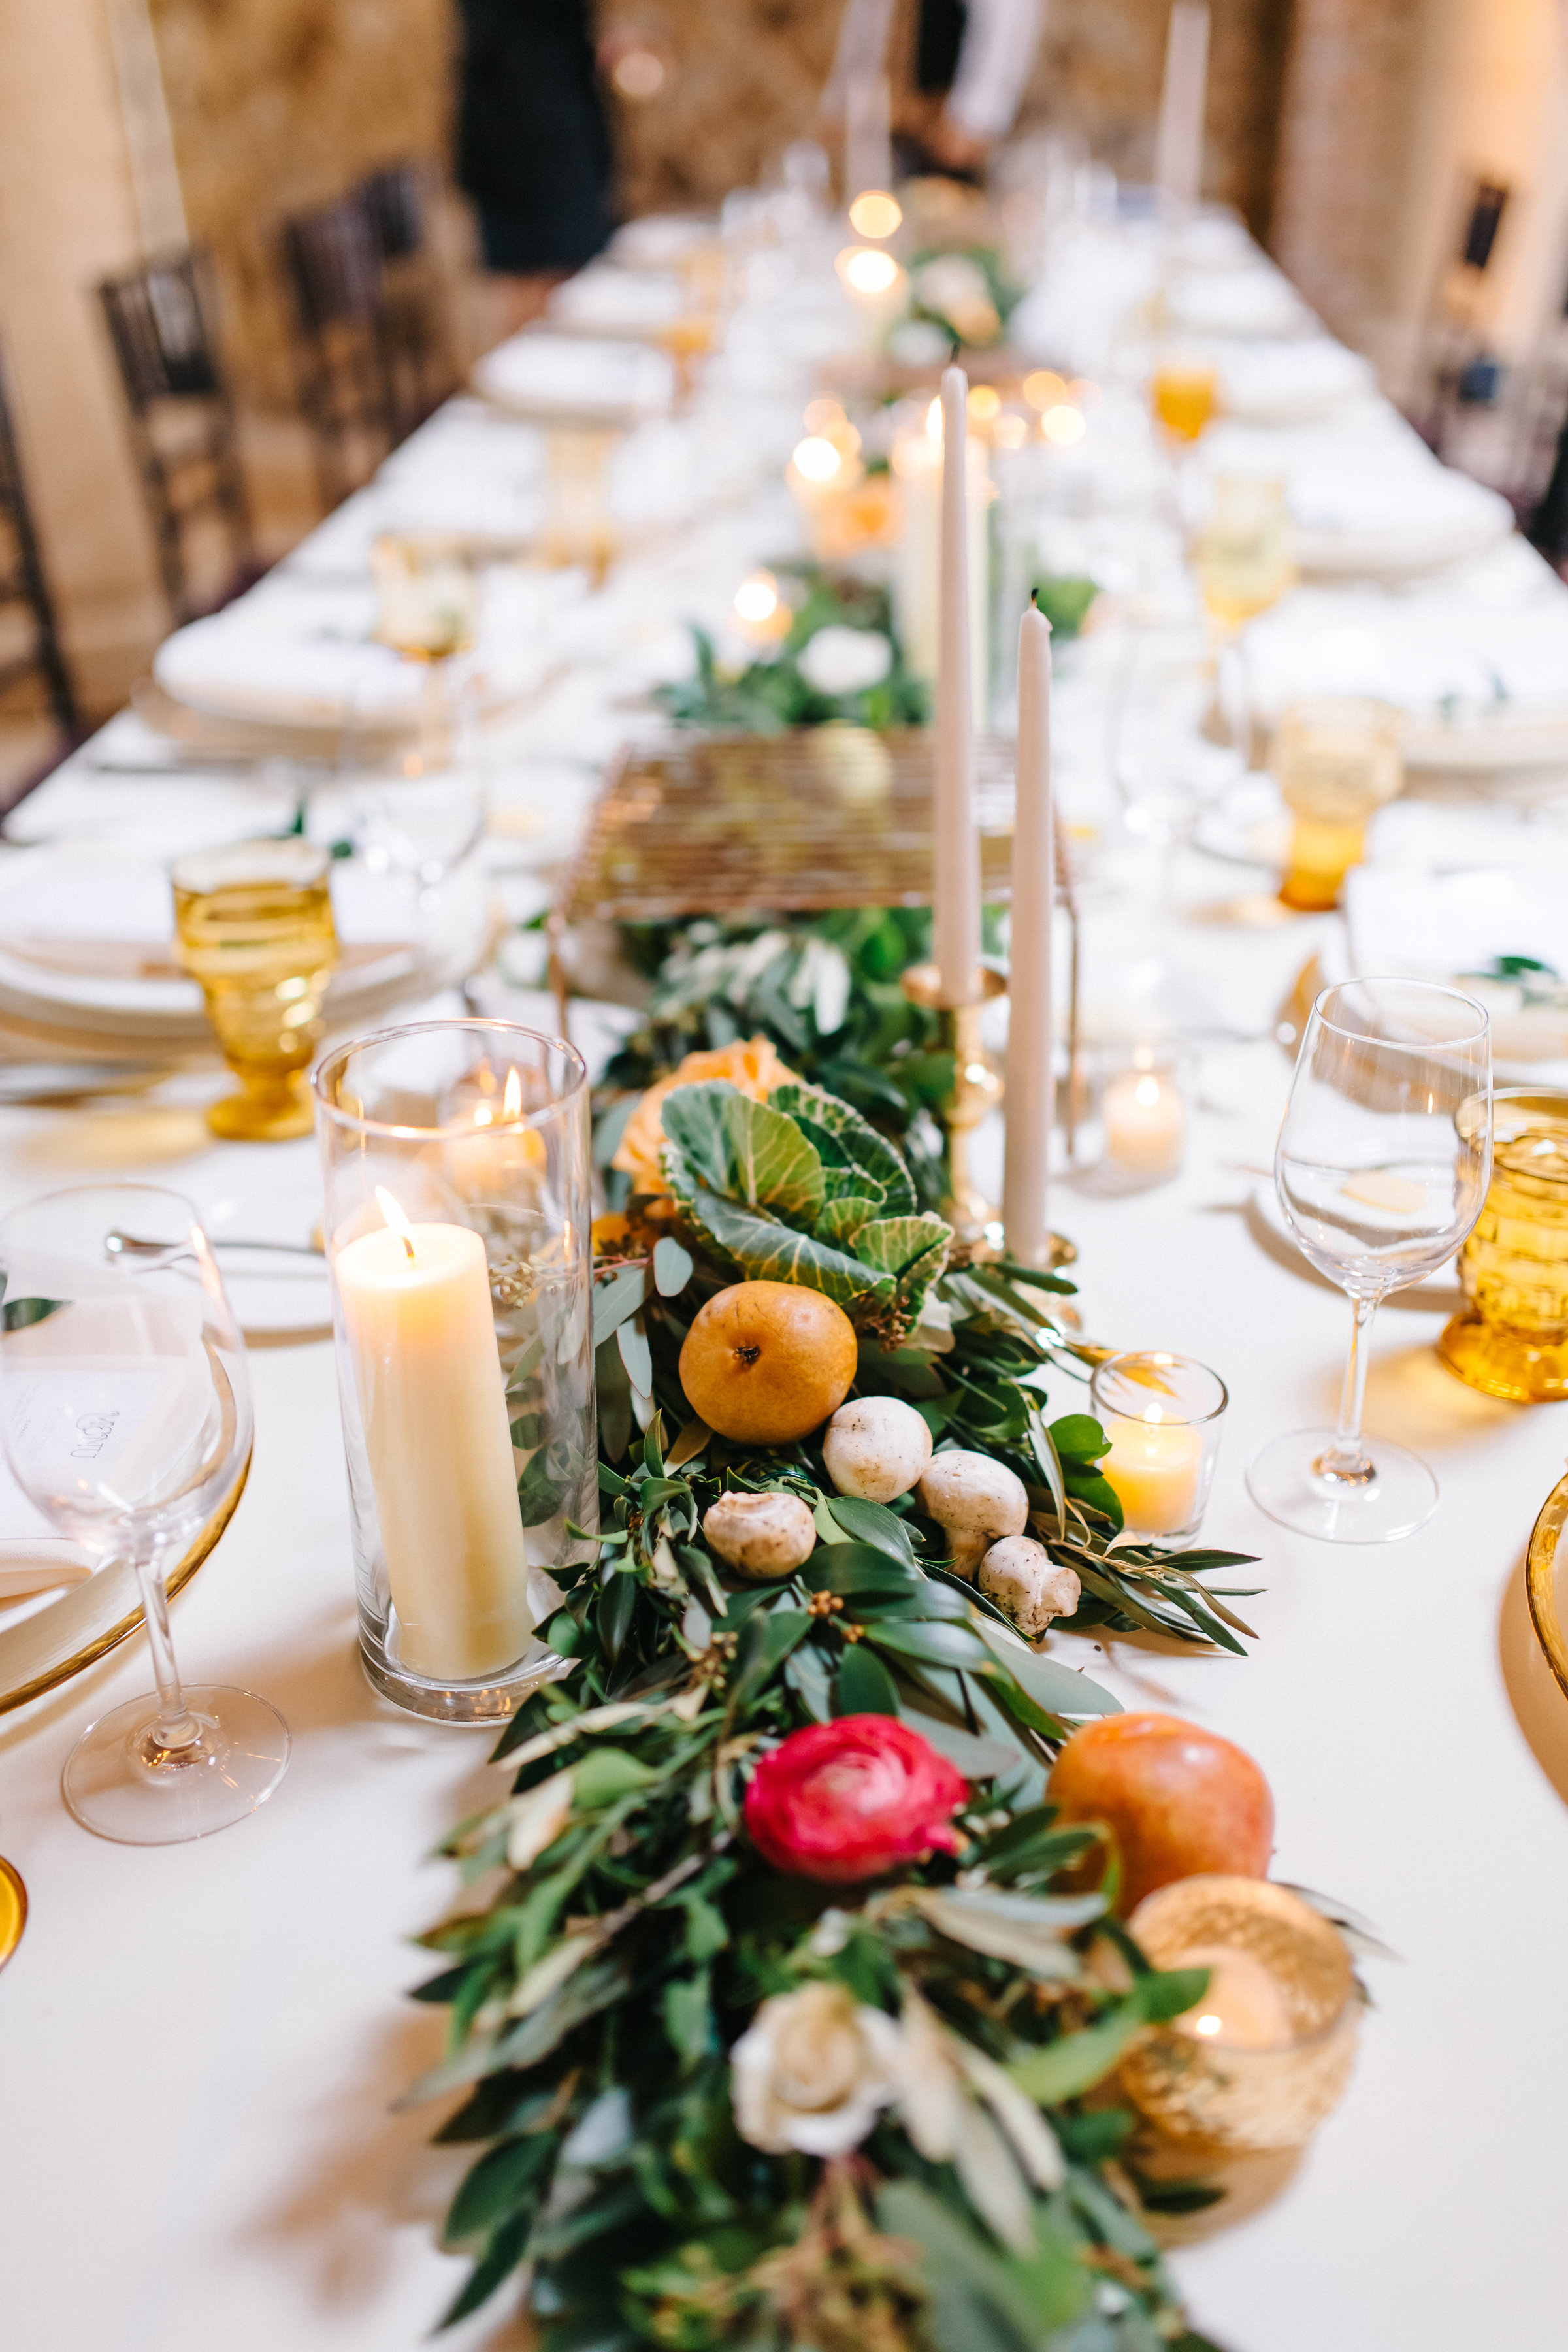 Alfresco tuscan wooden farm table tablescape with vegetables and fruit nestled in greenery  Orlando Wedding Planner Blue Ribbon Weddings  Orlando Wedding Photographer Emma Shourds Photography  Wedding Ceremony at Bell Tower at Bella Collina  Wedding Reception in Atrium at Bella Collina